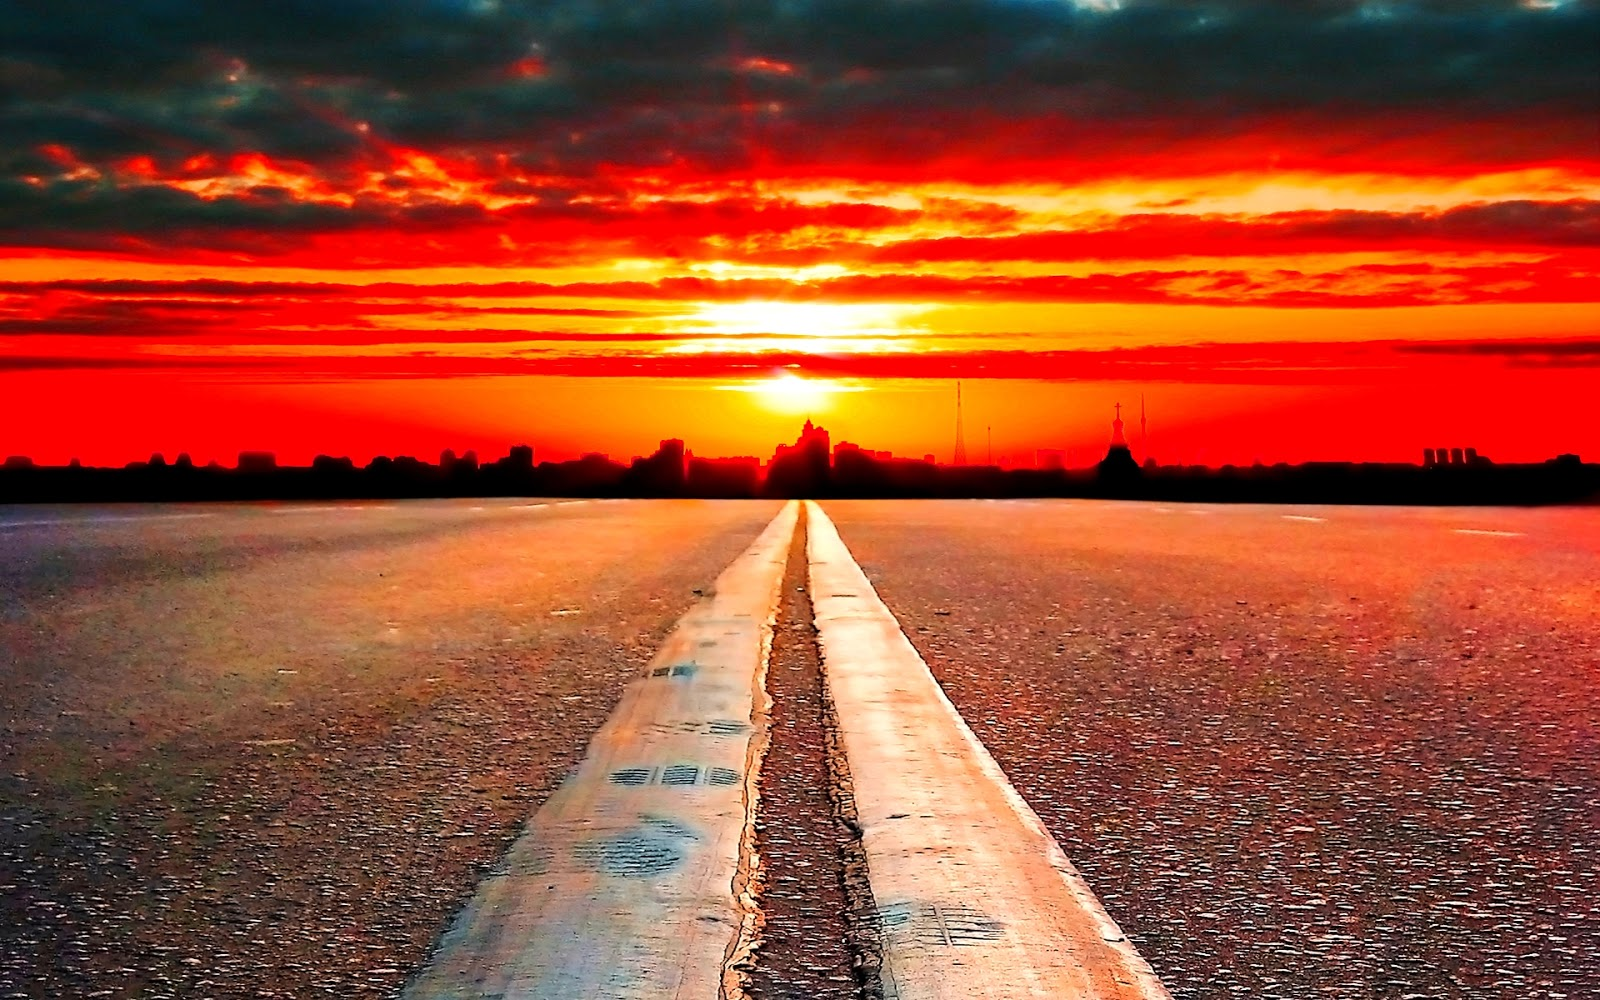 taken from http://hdwallpaper.freehdw.com/0005/3d-abstract_widewallpaper_road-to-the-horizon_43498.jpg